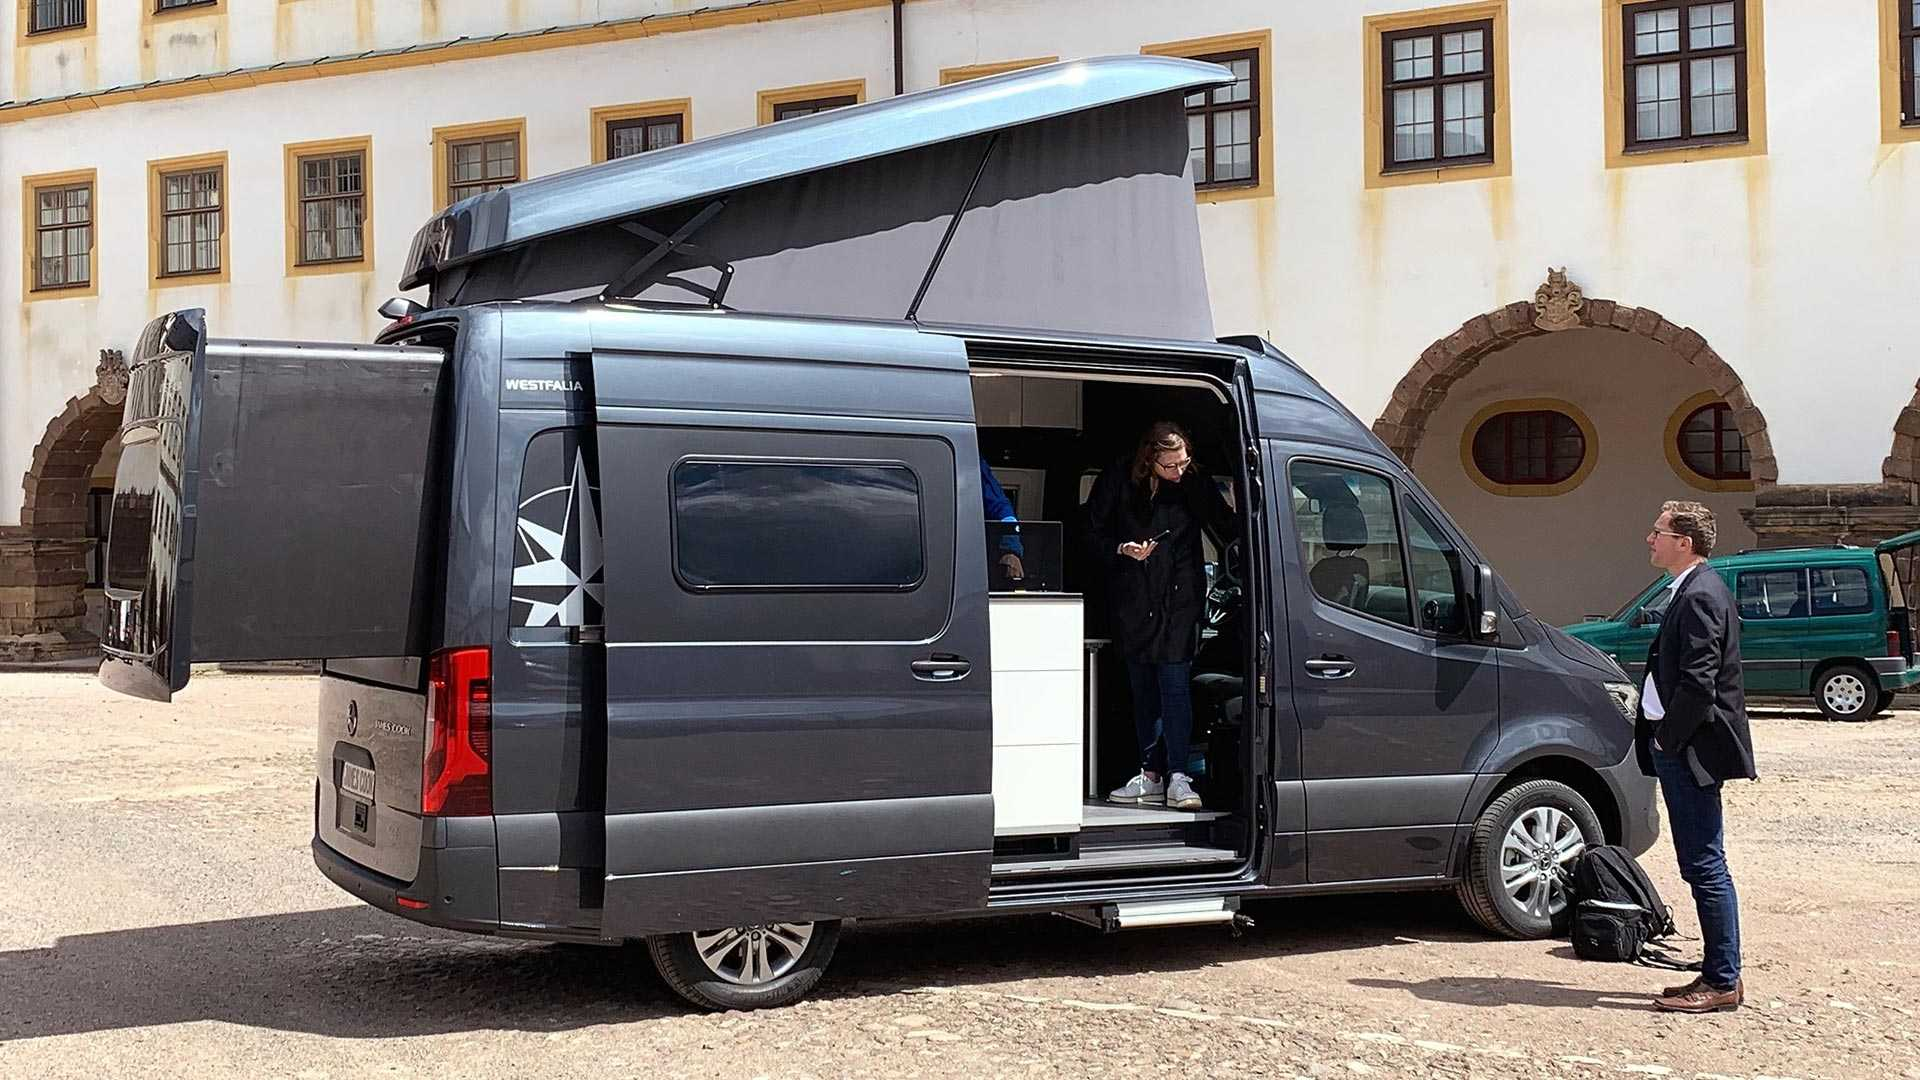 Westfalia James Cook Is A Sprinter Camper With Slide-Out Bed